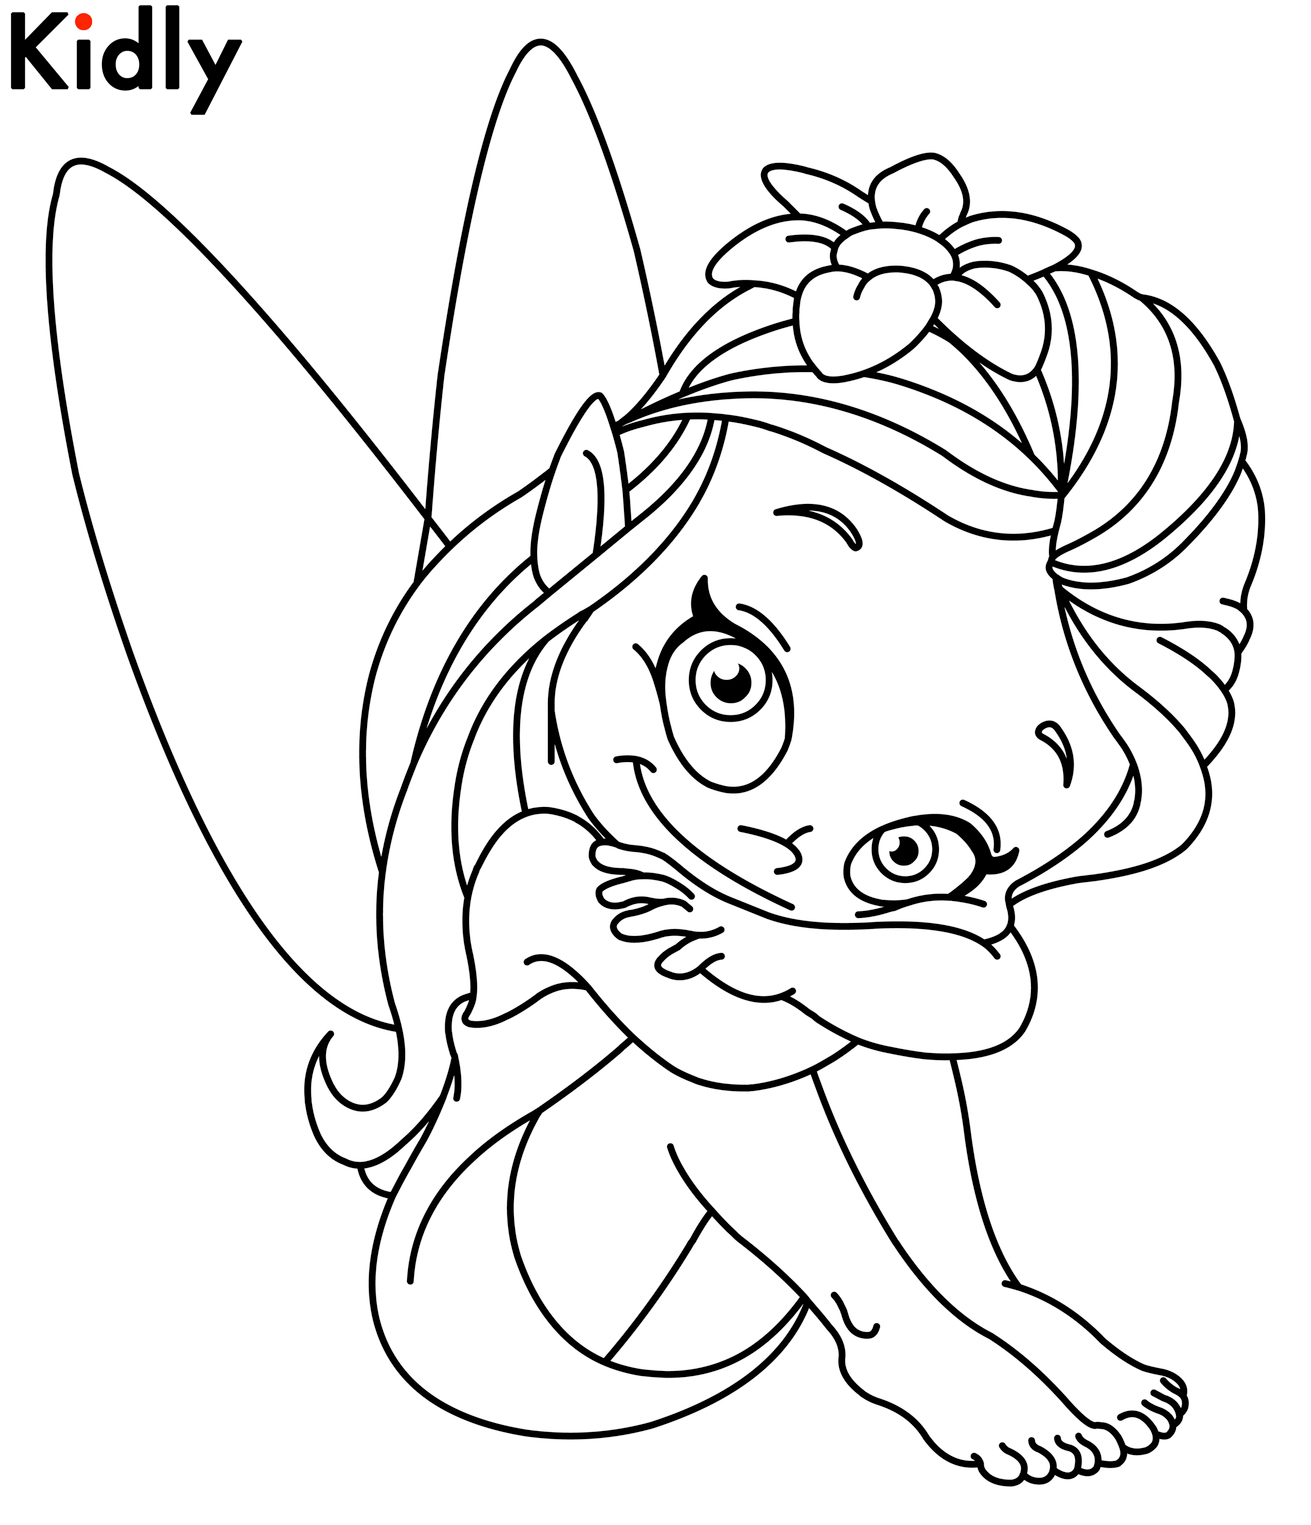 Disney Fairies Coloring Pages Silvermist at GetDrawings.com | Free ...